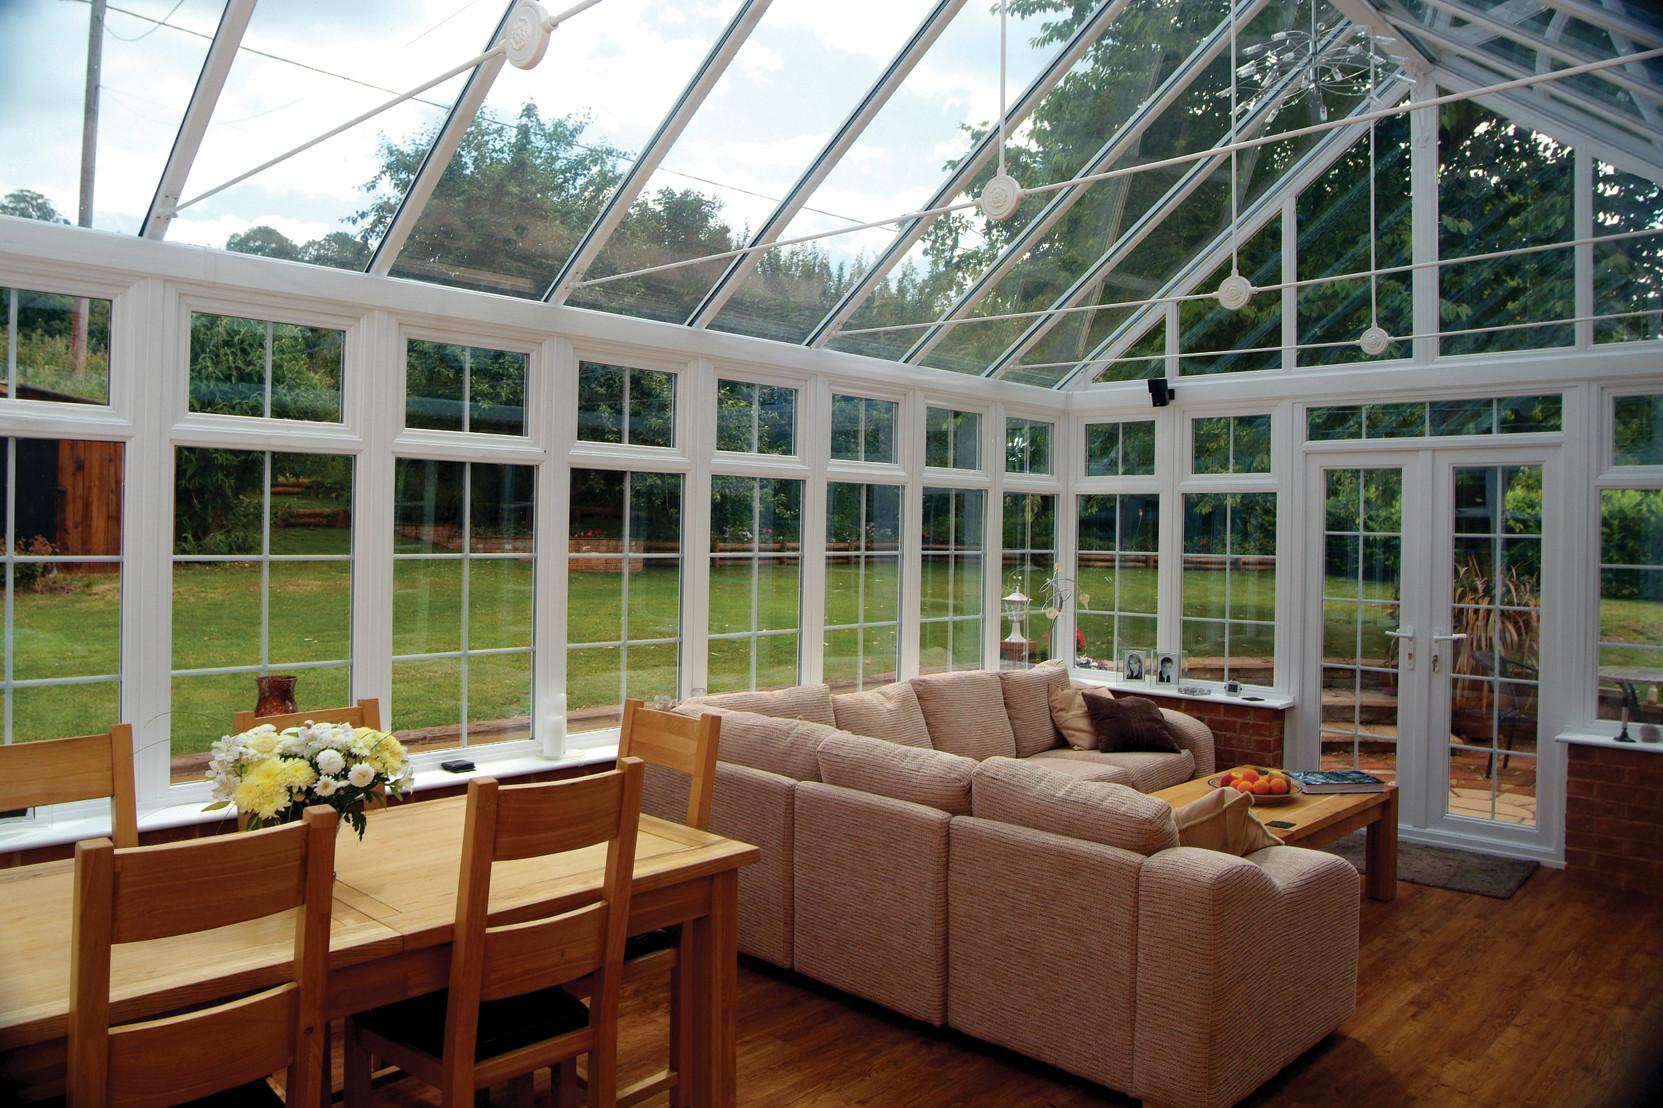 Adorable Sun Room Home Interior Design Ideas Glass